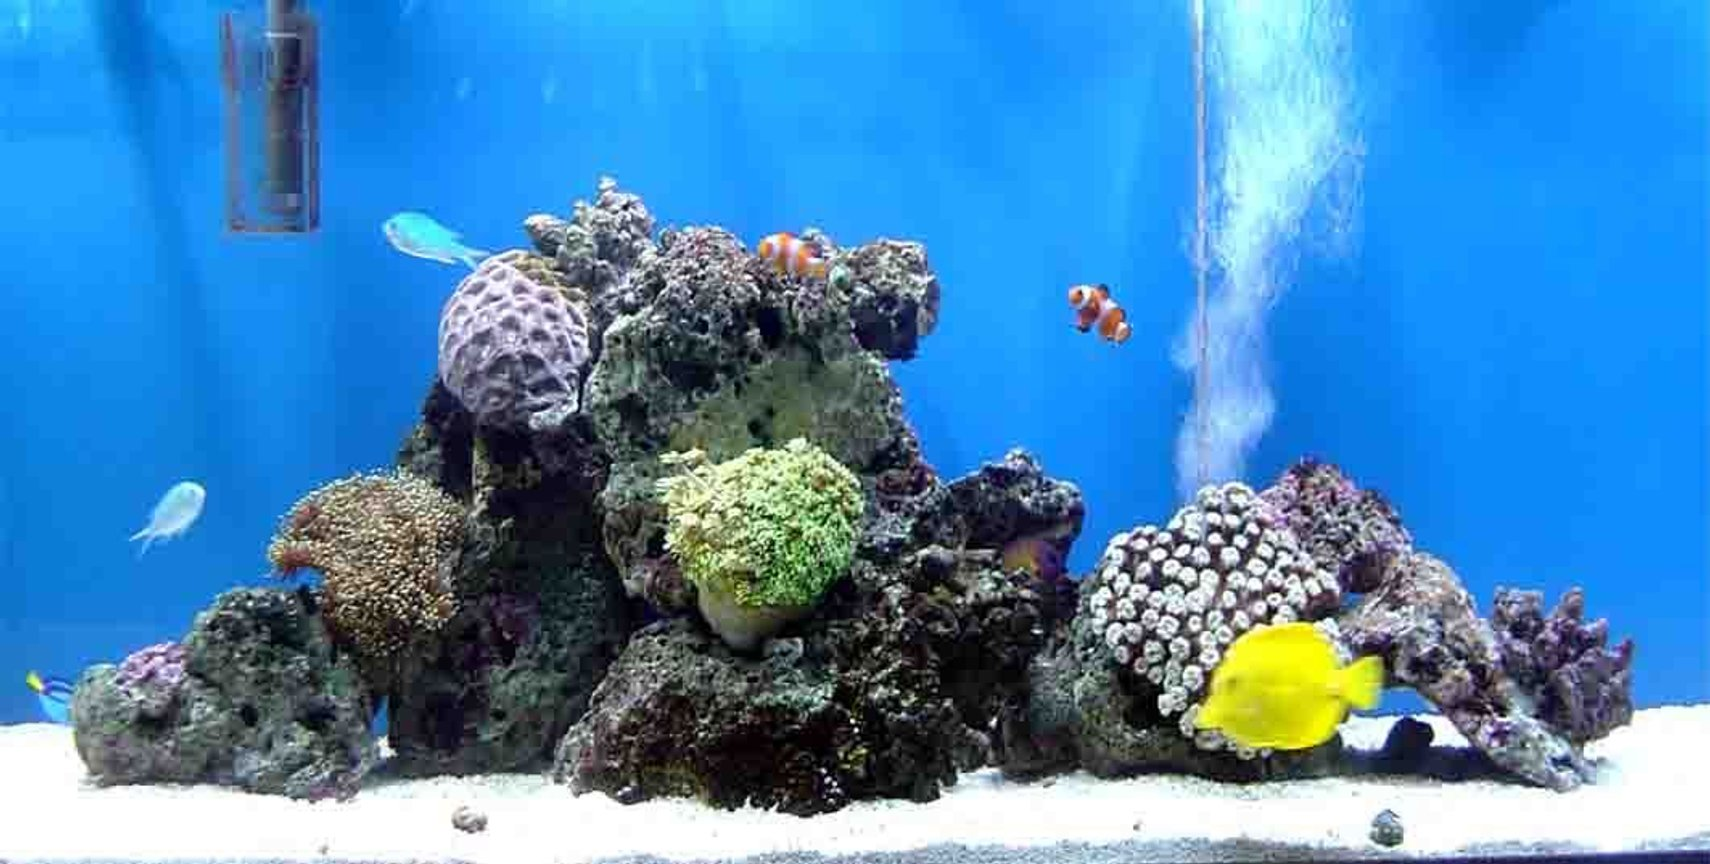 fish tank picture - Tank parameters are great Added a Yellow tang and some more coral. Not an expert on naming them yet, but i think the green ones a golf ball and the one on the right is a galaxia.